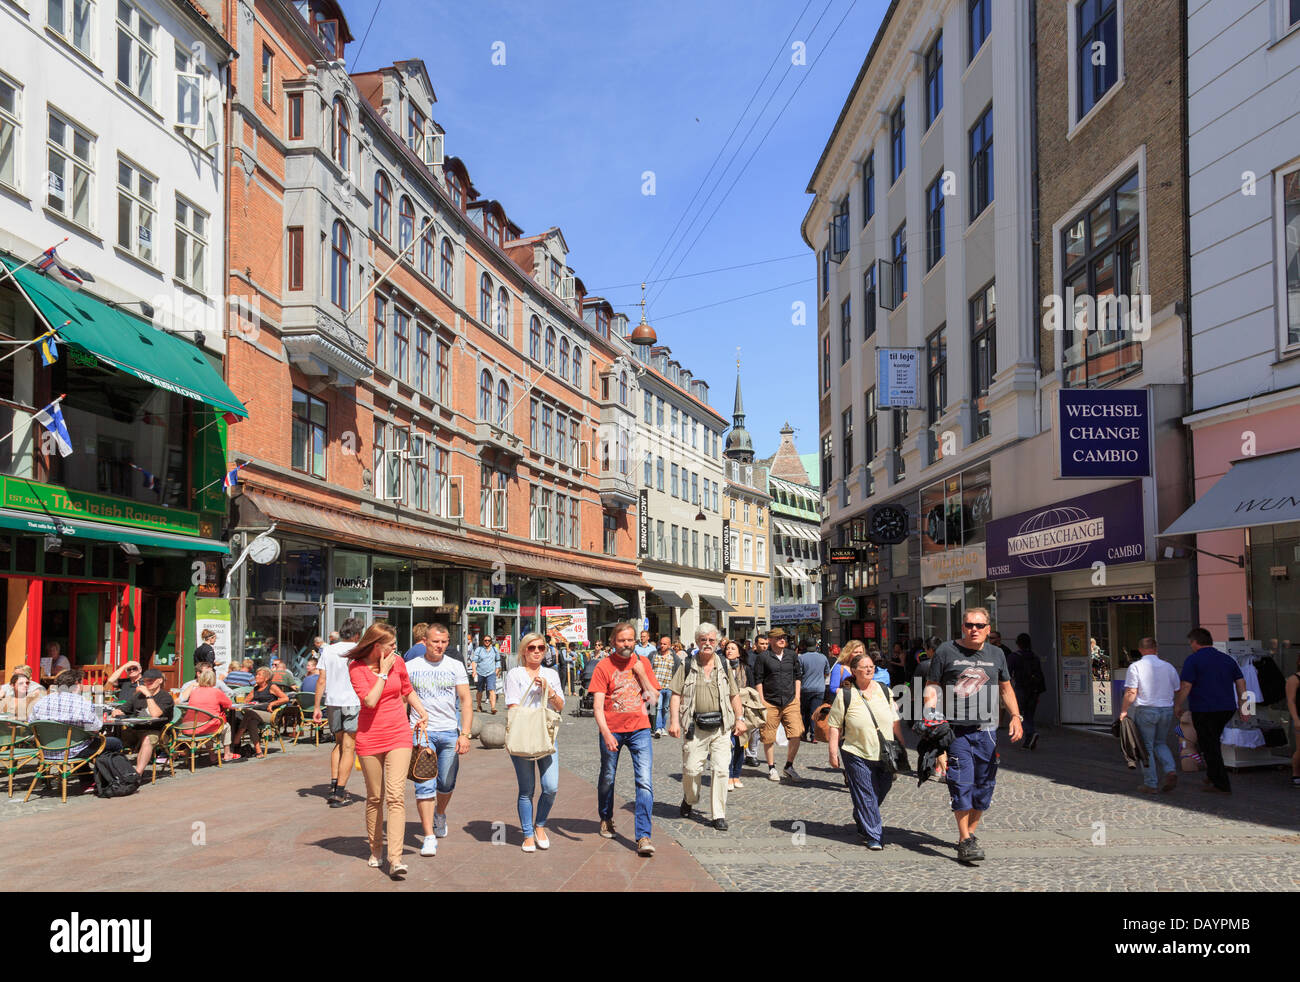 Pedestrianised shopping street in city centre busy with people, Strøget, Copenhagen, Denmark - Stock Image